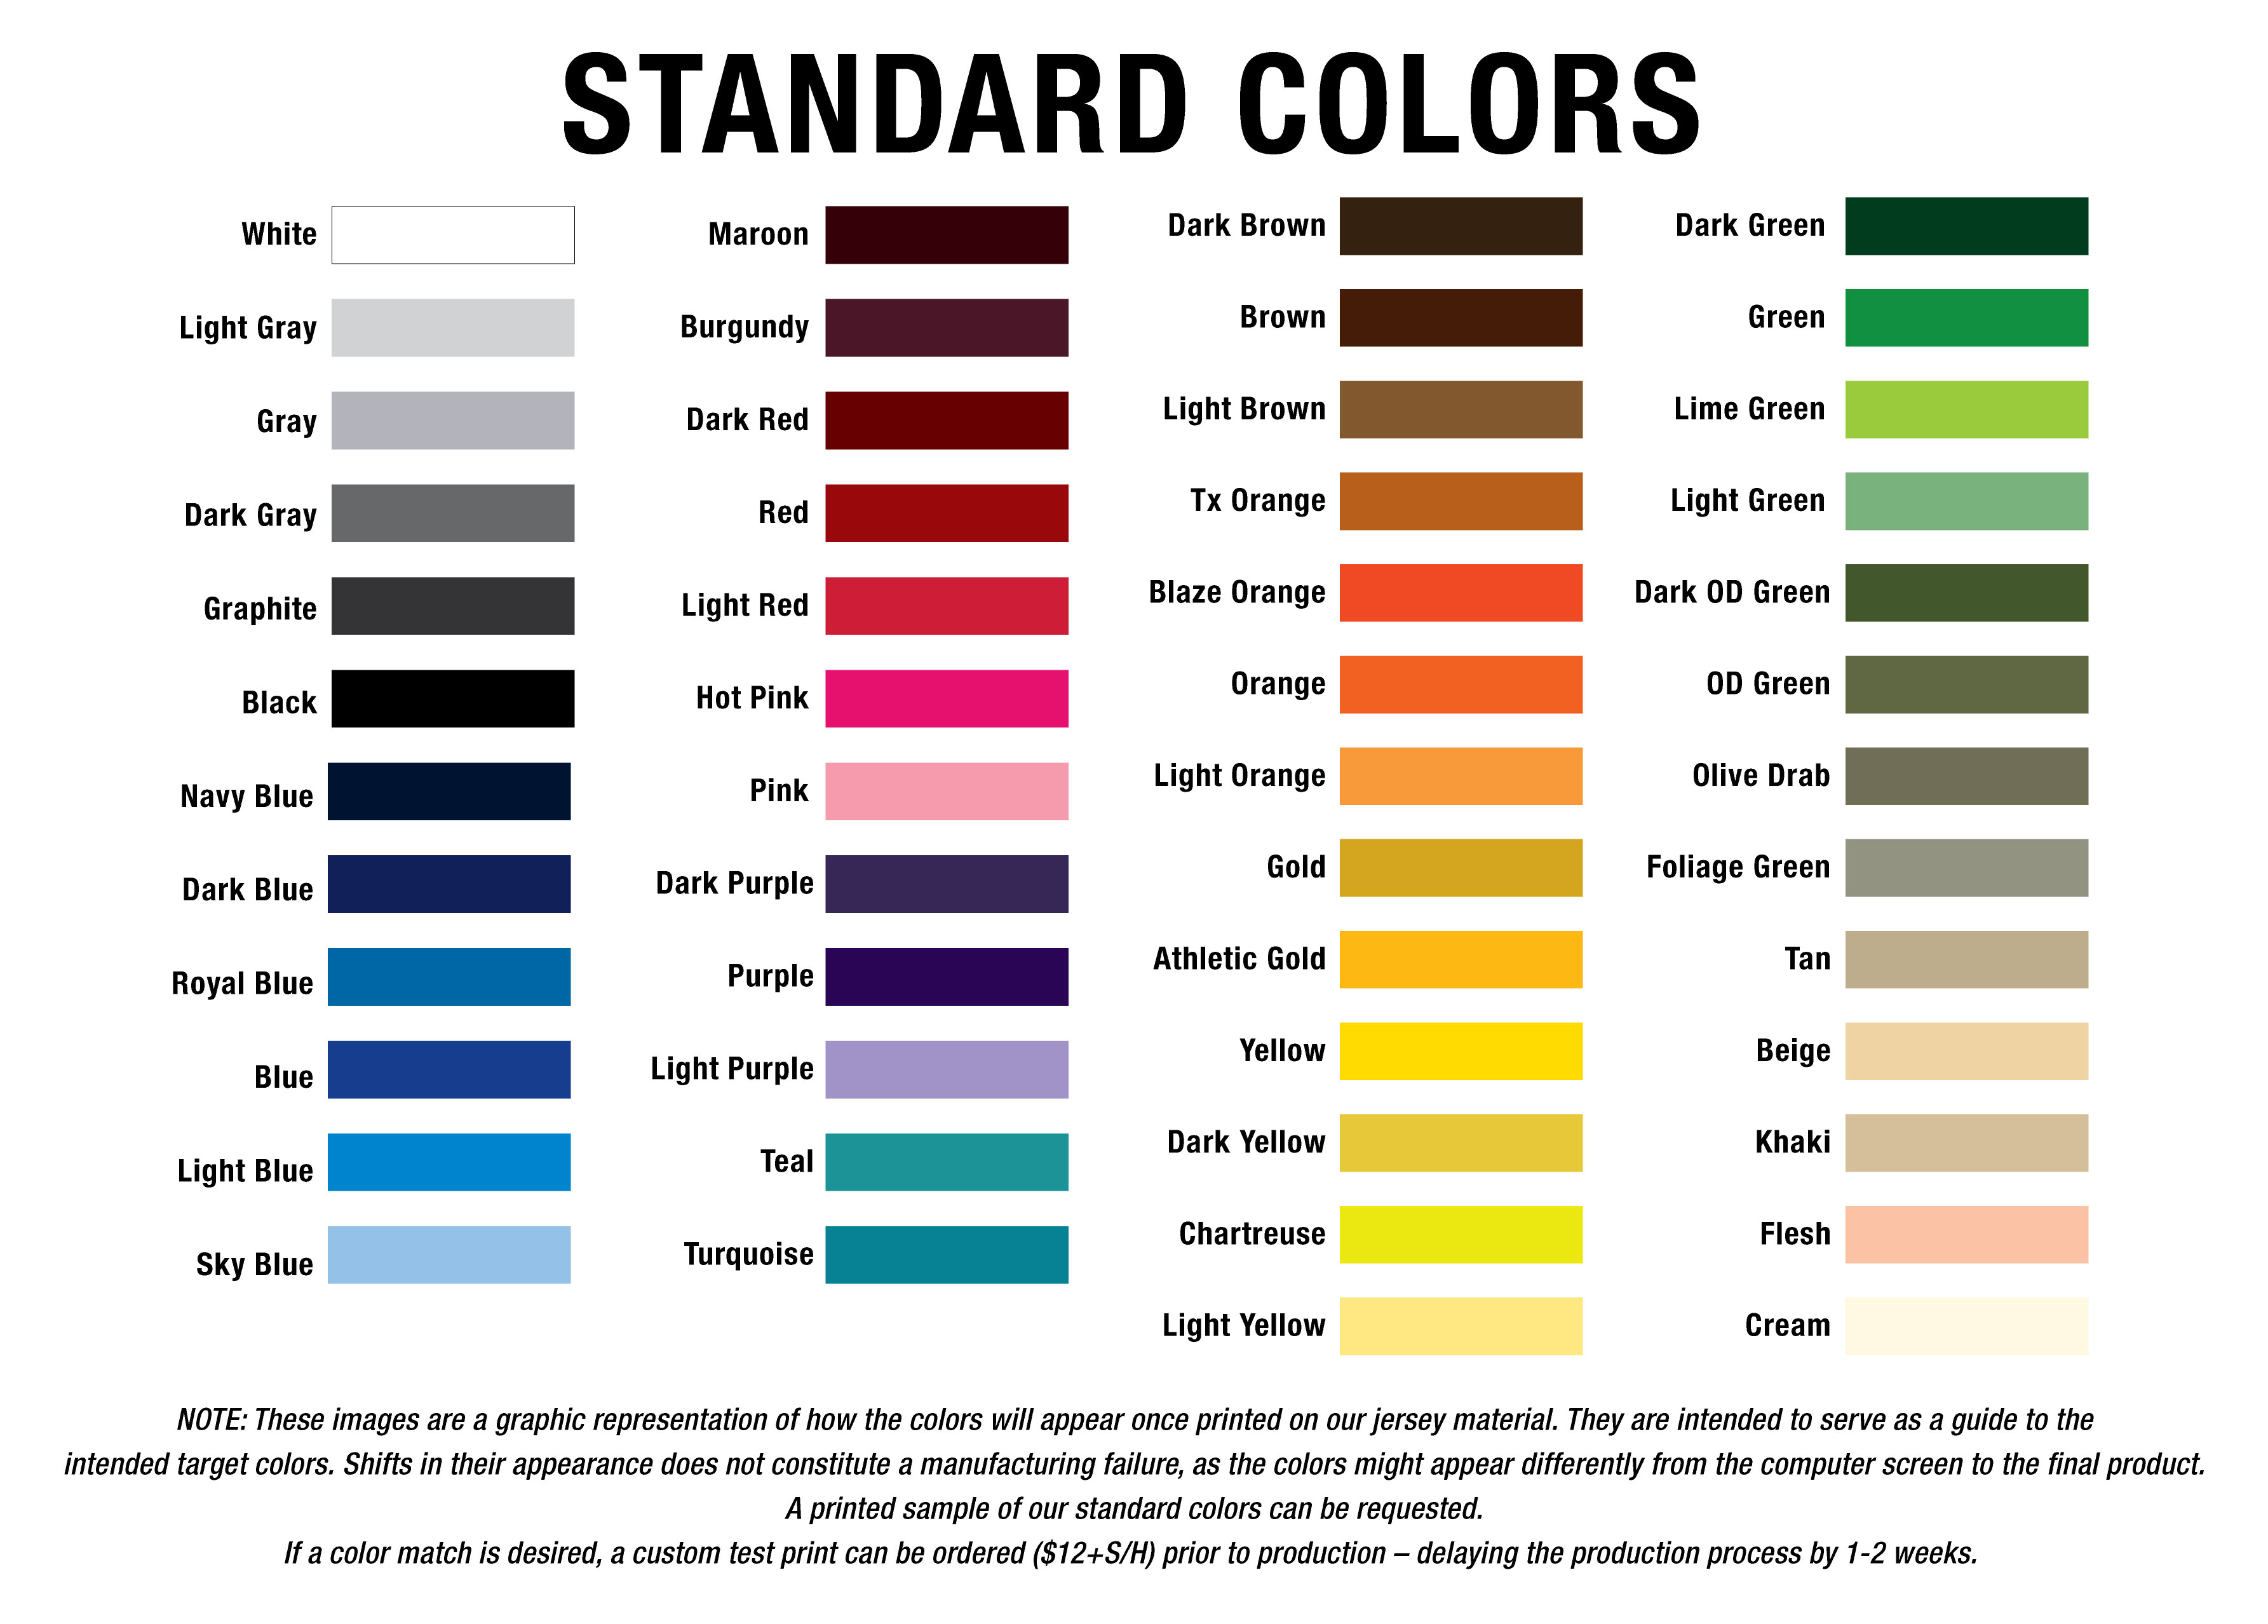 Standard Colors | G2 Gemini | The leader in custom apparel ...